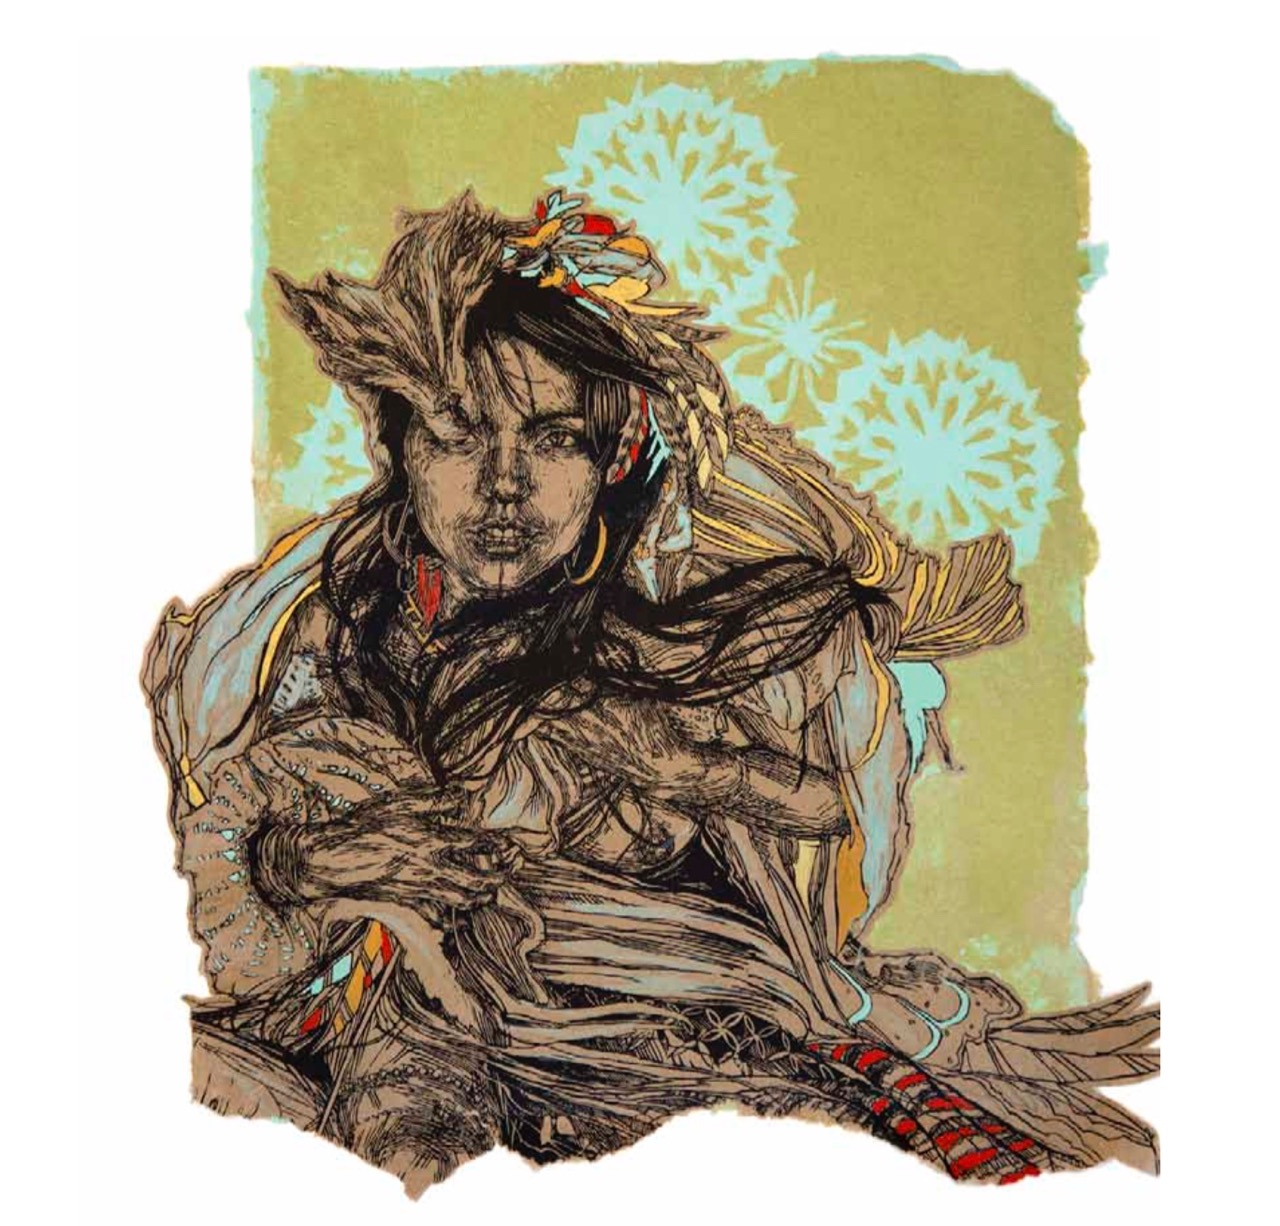 Previews: Swoon -